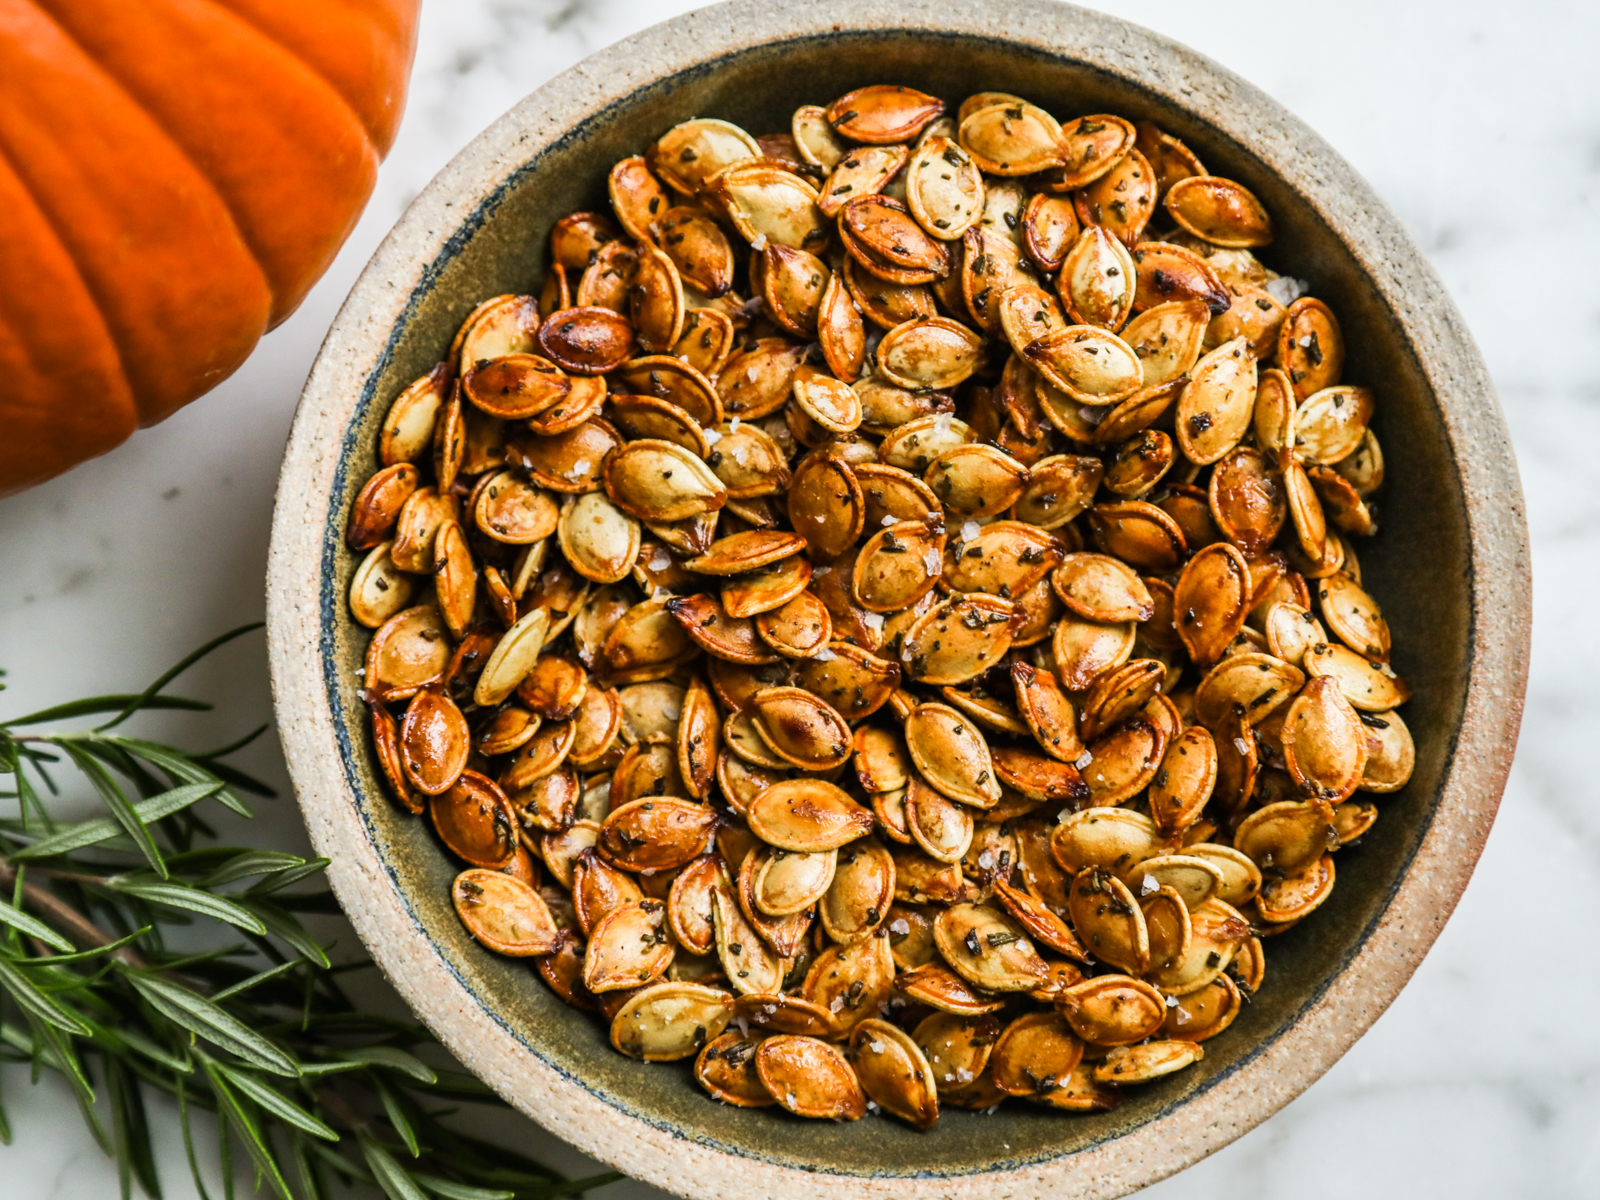 Rosemary-Brown Sugar Pumpkin Seeds Recipe